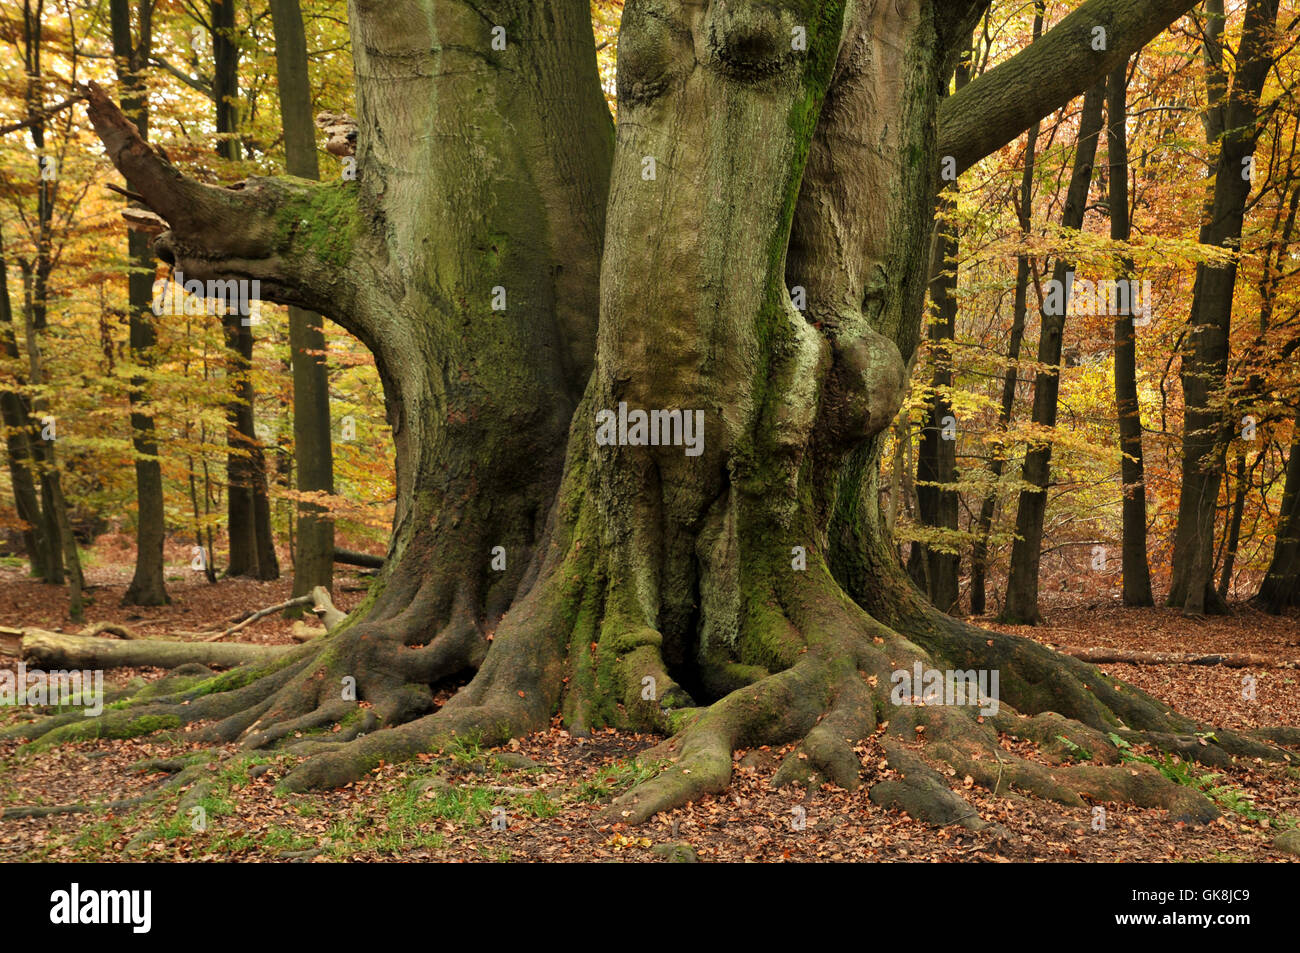 book trunk clump of trees - Stock Image